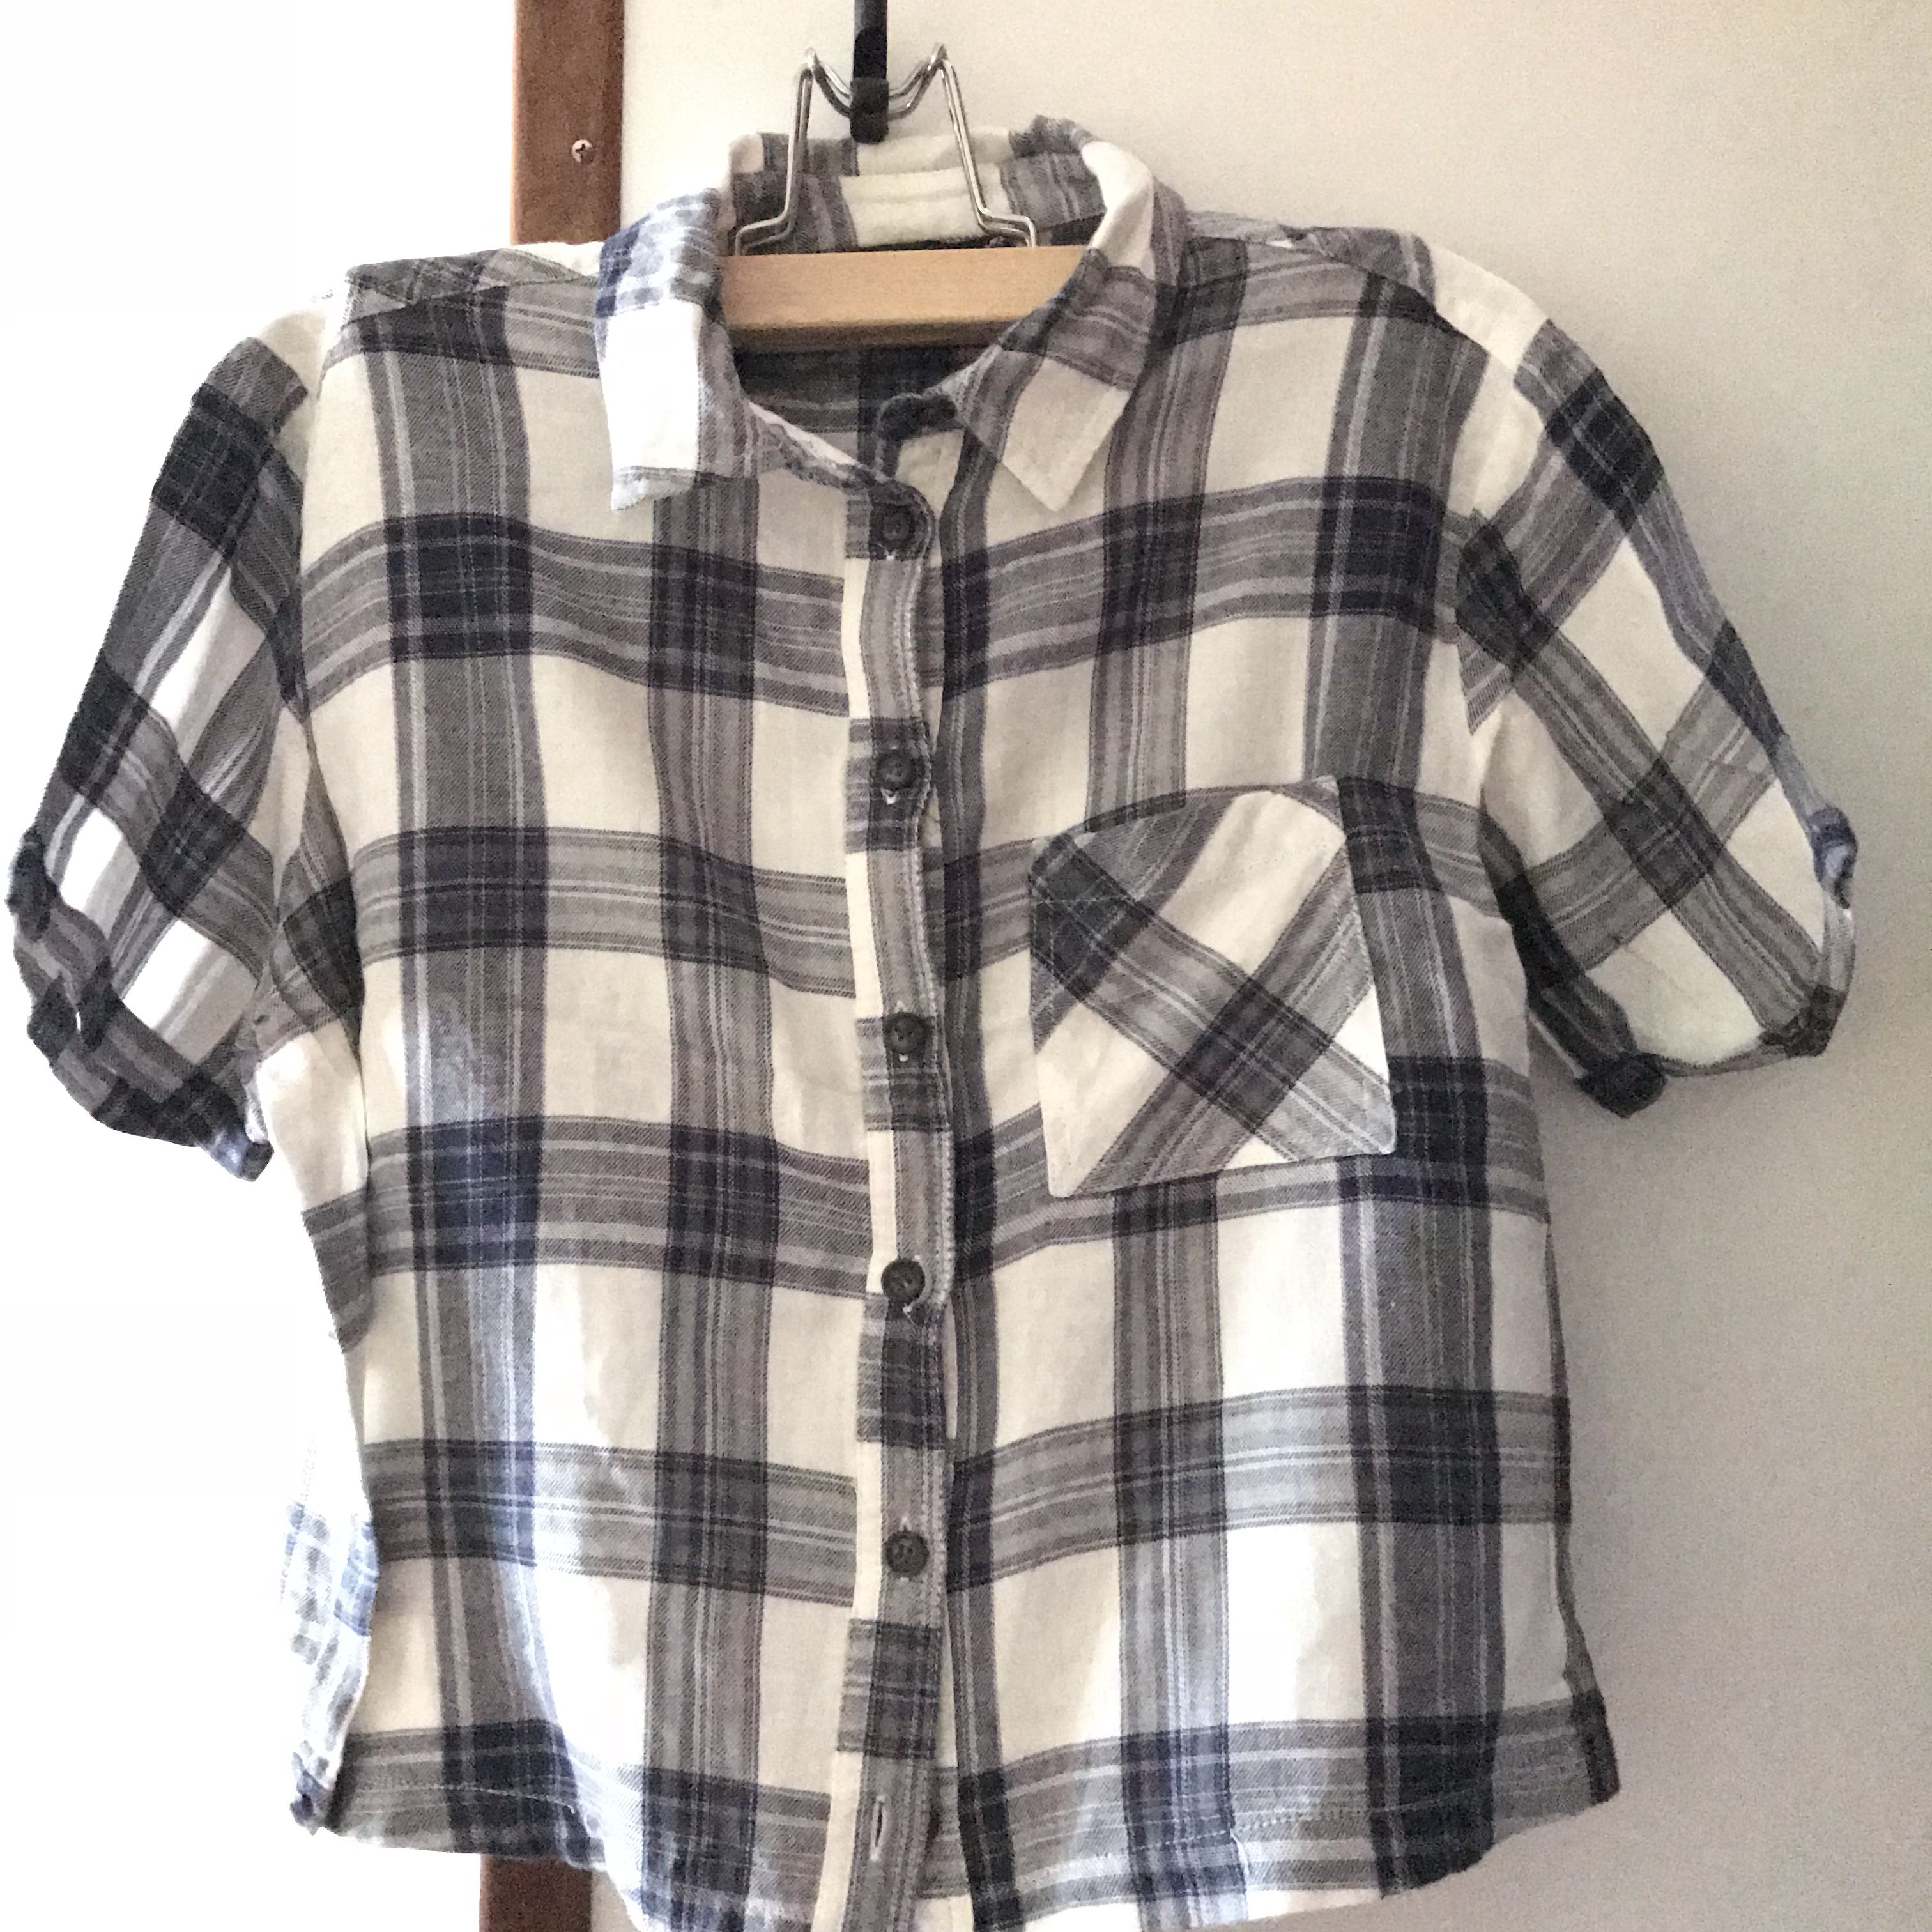 37614ad8f6ee23 Womens Blue And White Plaid Shirt – EDGE Engineering and Consulting ...